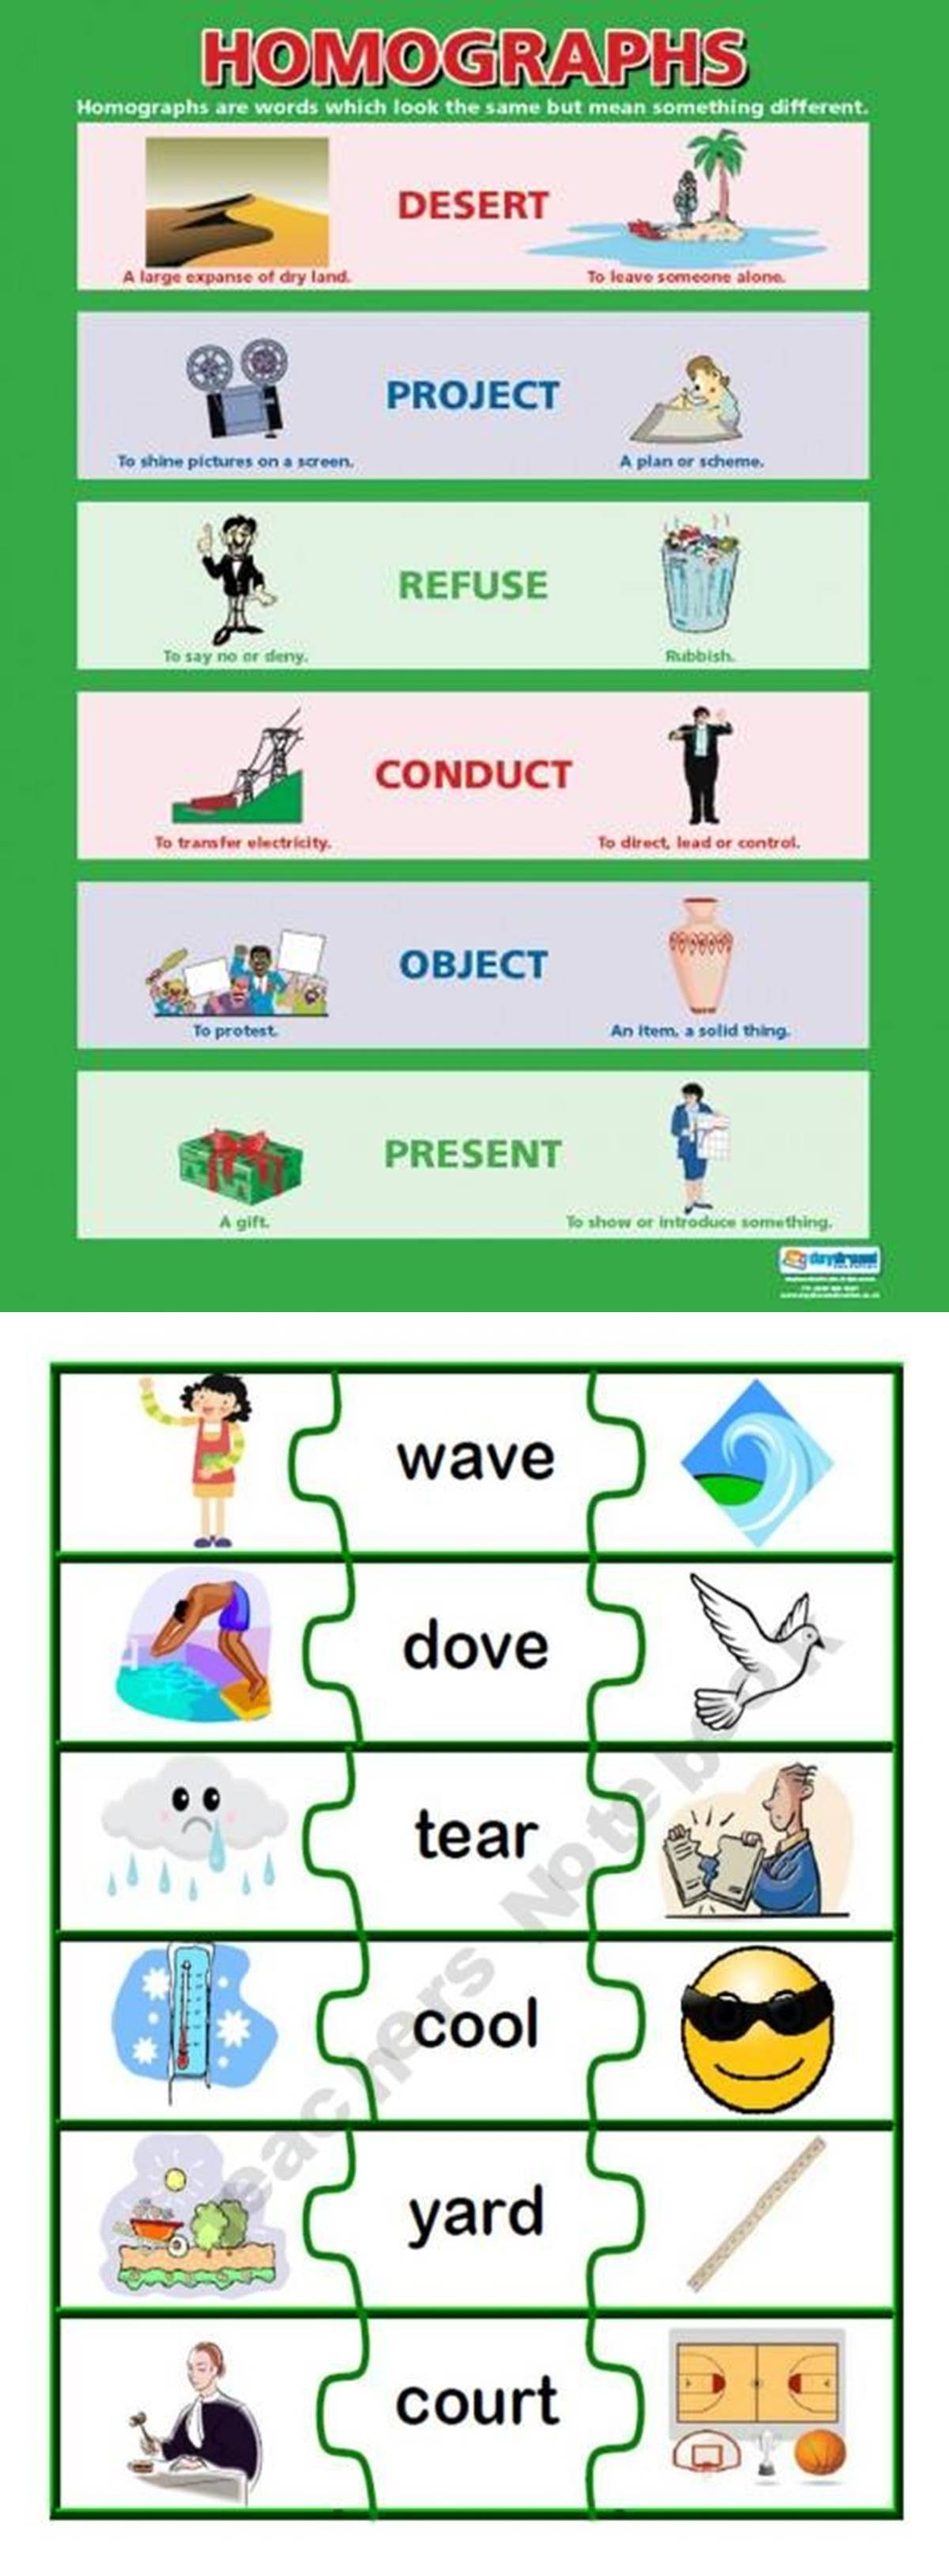 Common Homographs in English 3